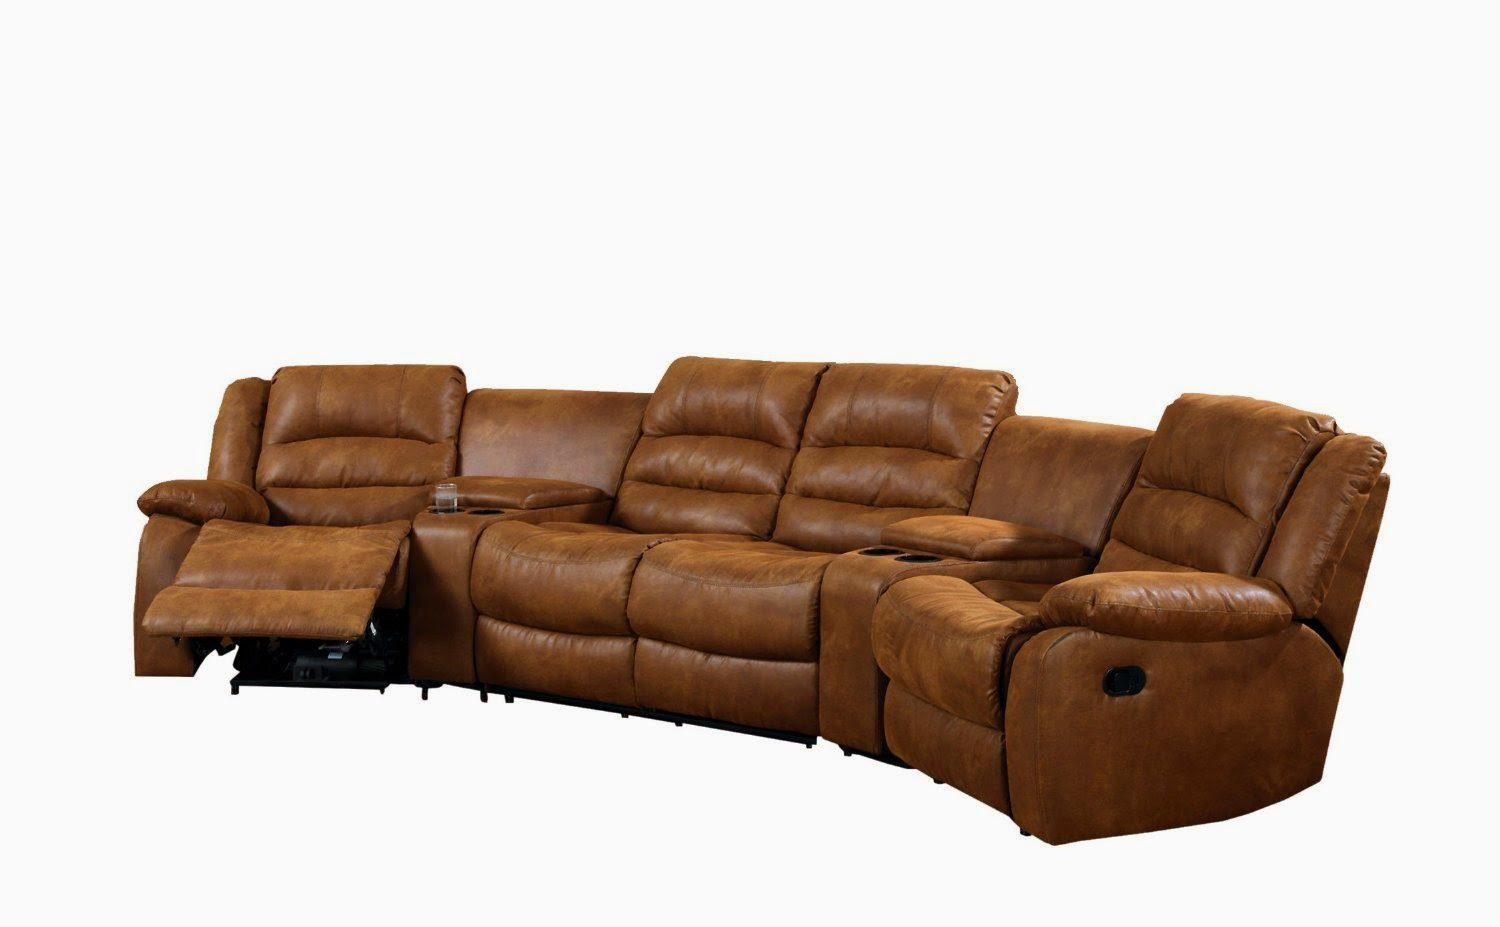 Red Leather Sofa Sets On Sale Brown Under 500 Reclining With Cup Holders